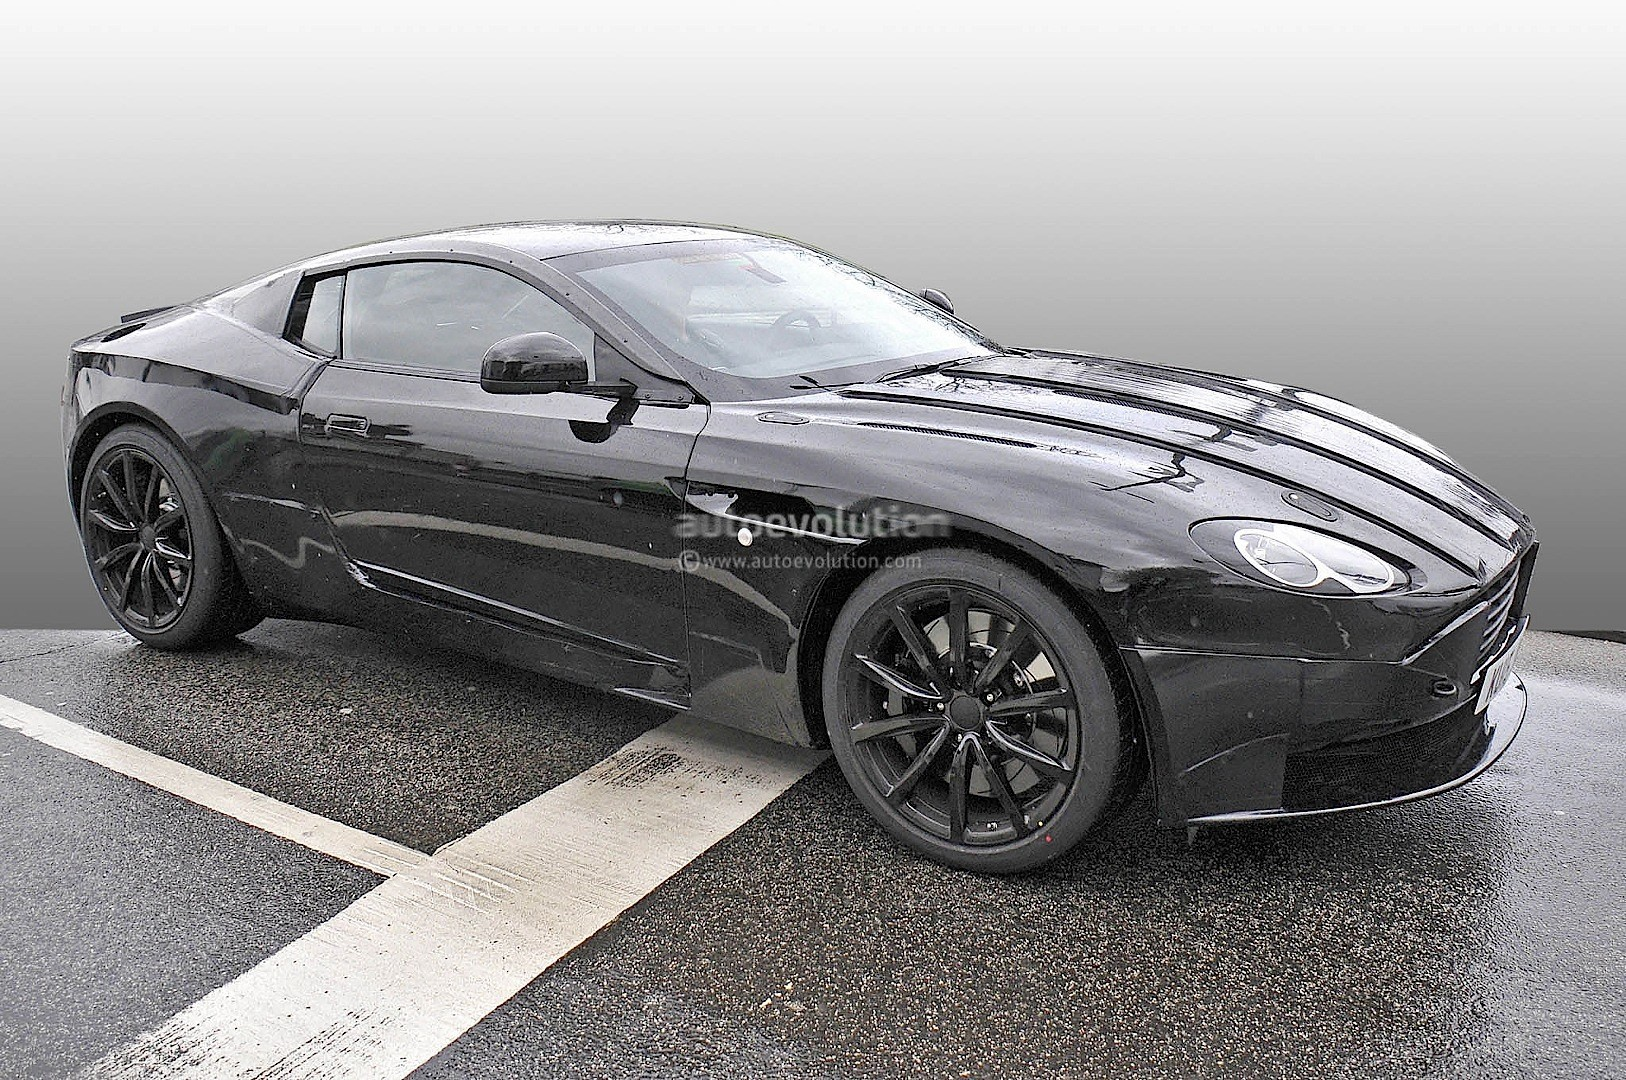 2017 Aston Martin DB9 Successor Prototype Spied: DB10 ...